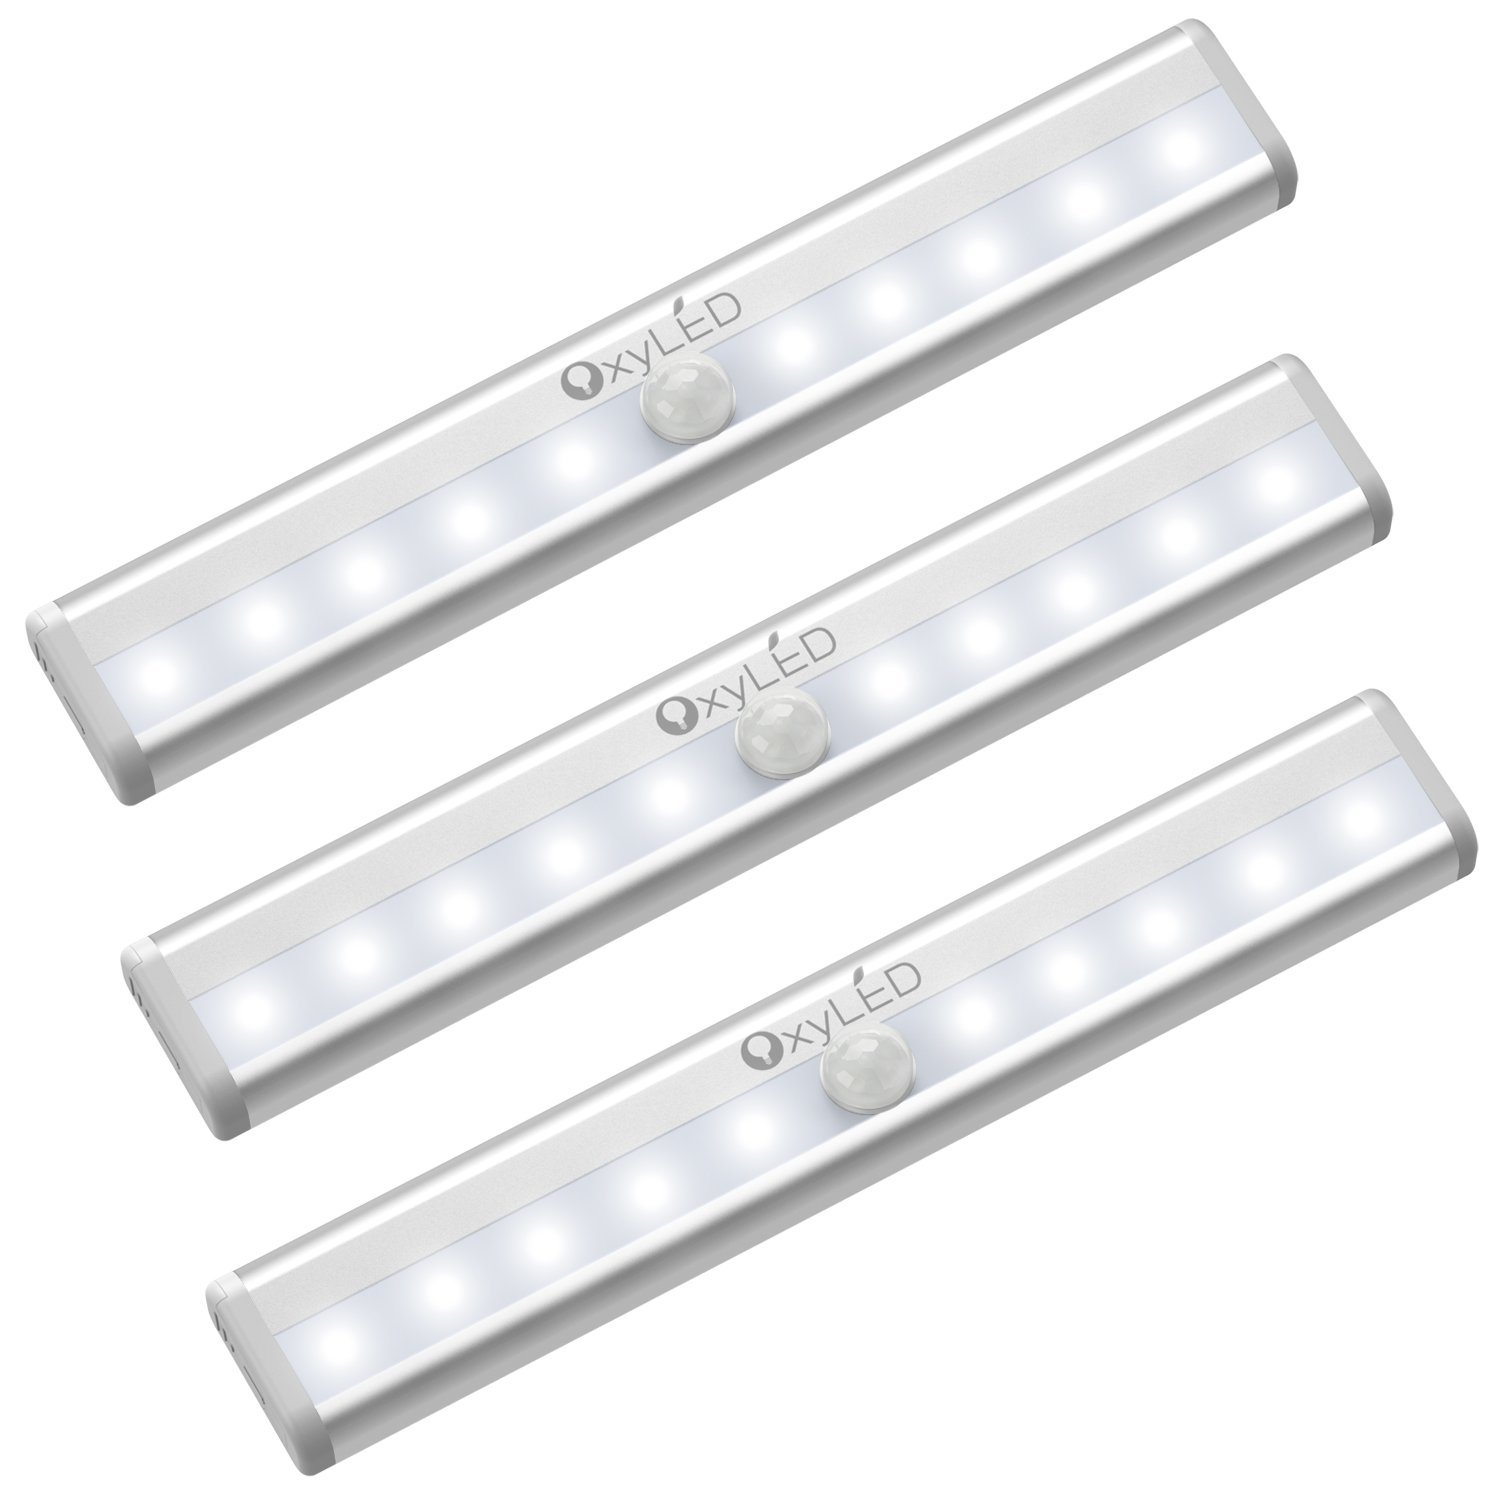 OxyLED Motion Sensor Closet Lights, Cordless Under Cabinet Lightening, Stick-on Anywhere Wireless Battery Operated 10 LED Night Light Bar, Safe Lights for Closet Cabinet Wardrobe Stairs, 3 Pack by OxyLED